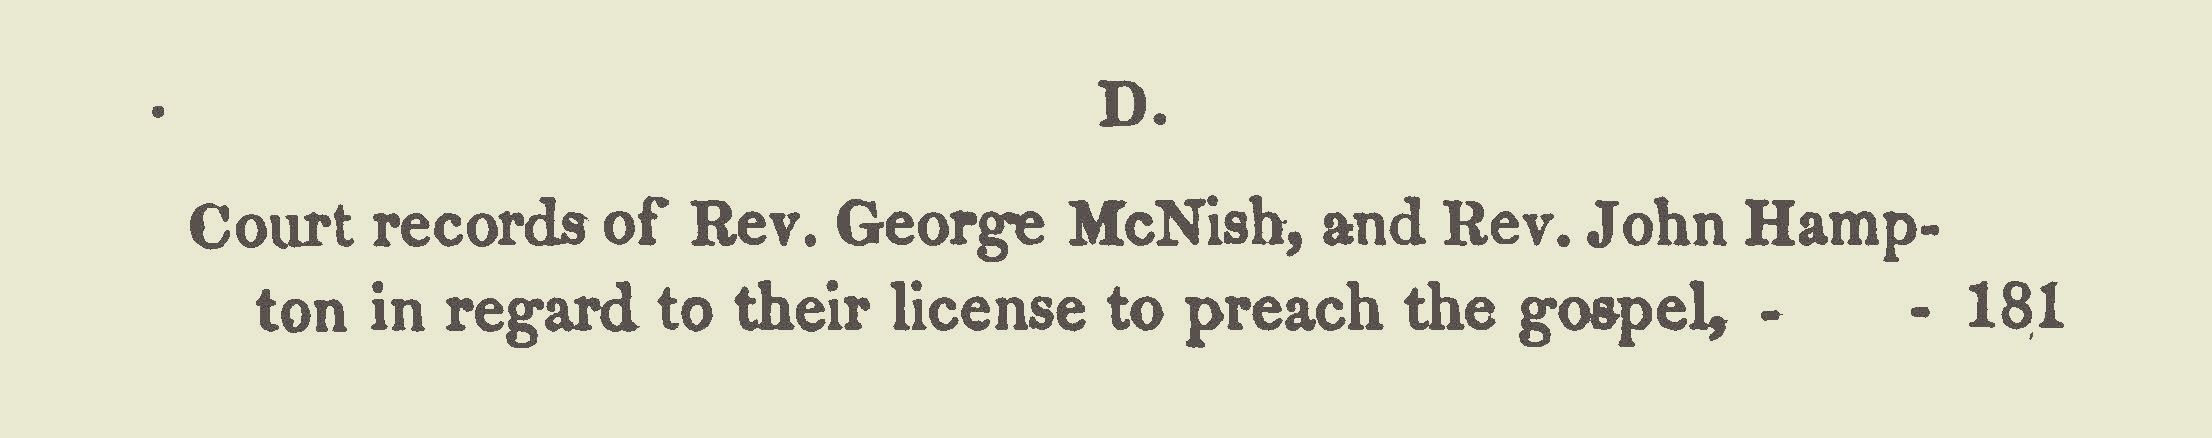 McNish, George, Petition to Take Dissenting Oath Title Page.jpg